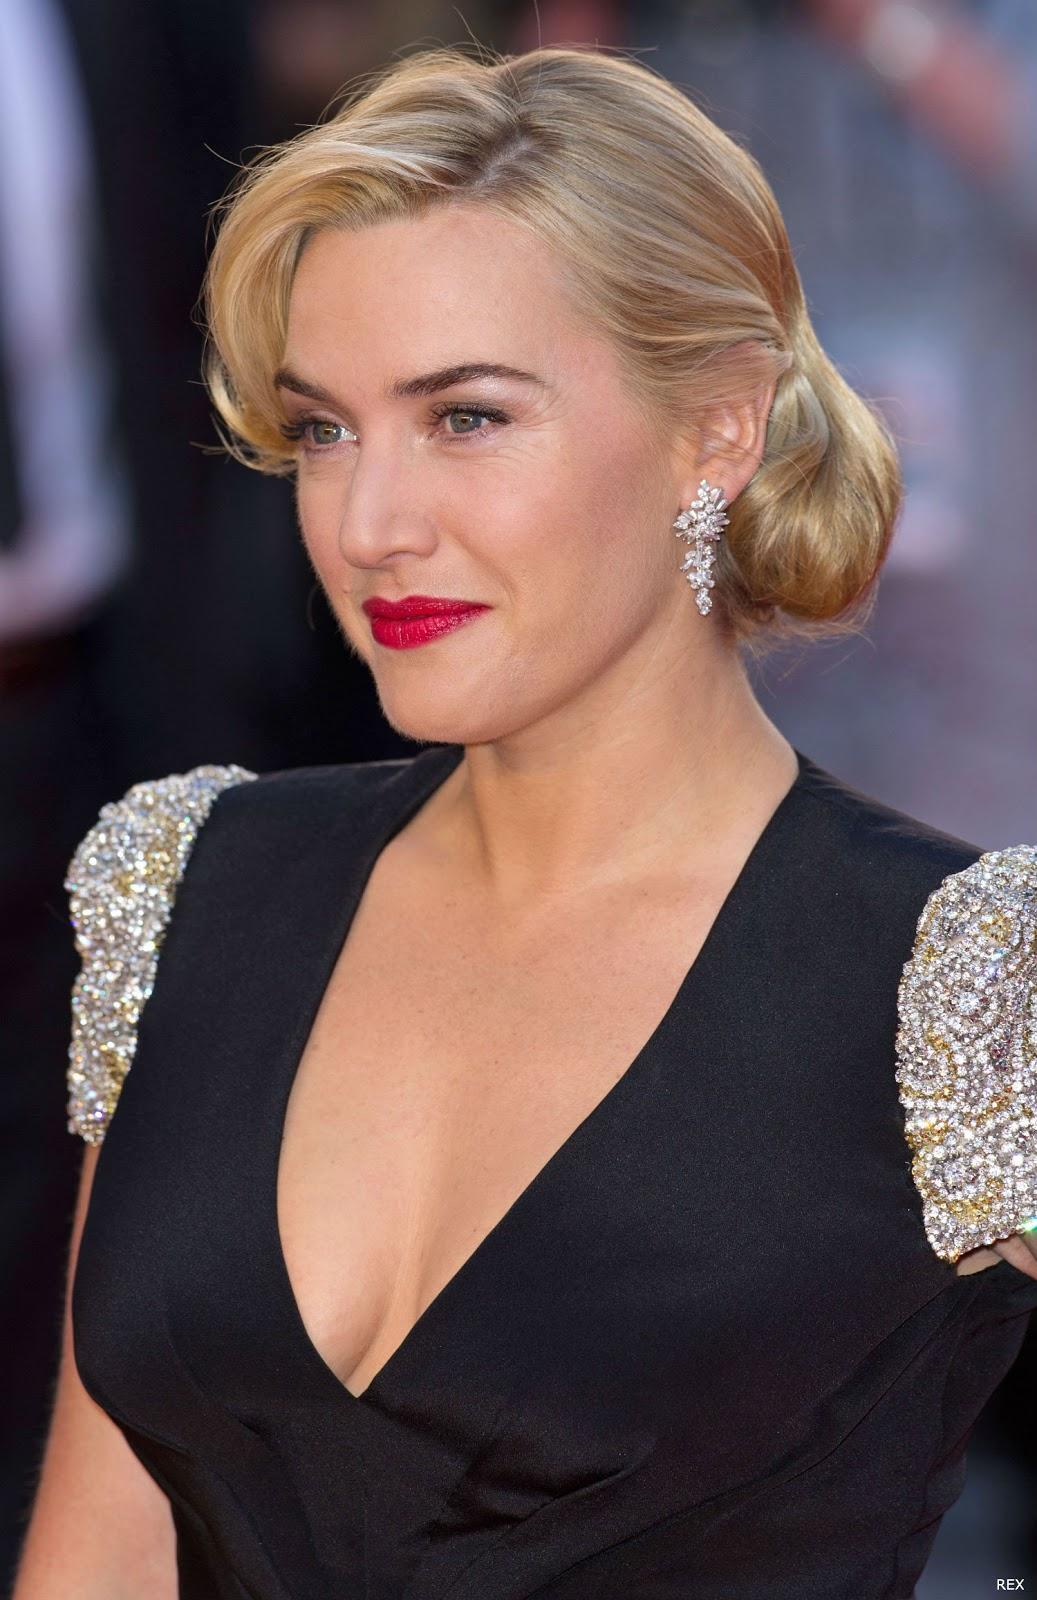 Kate winslet hot celebrities 2012 for Abbey brooks salon